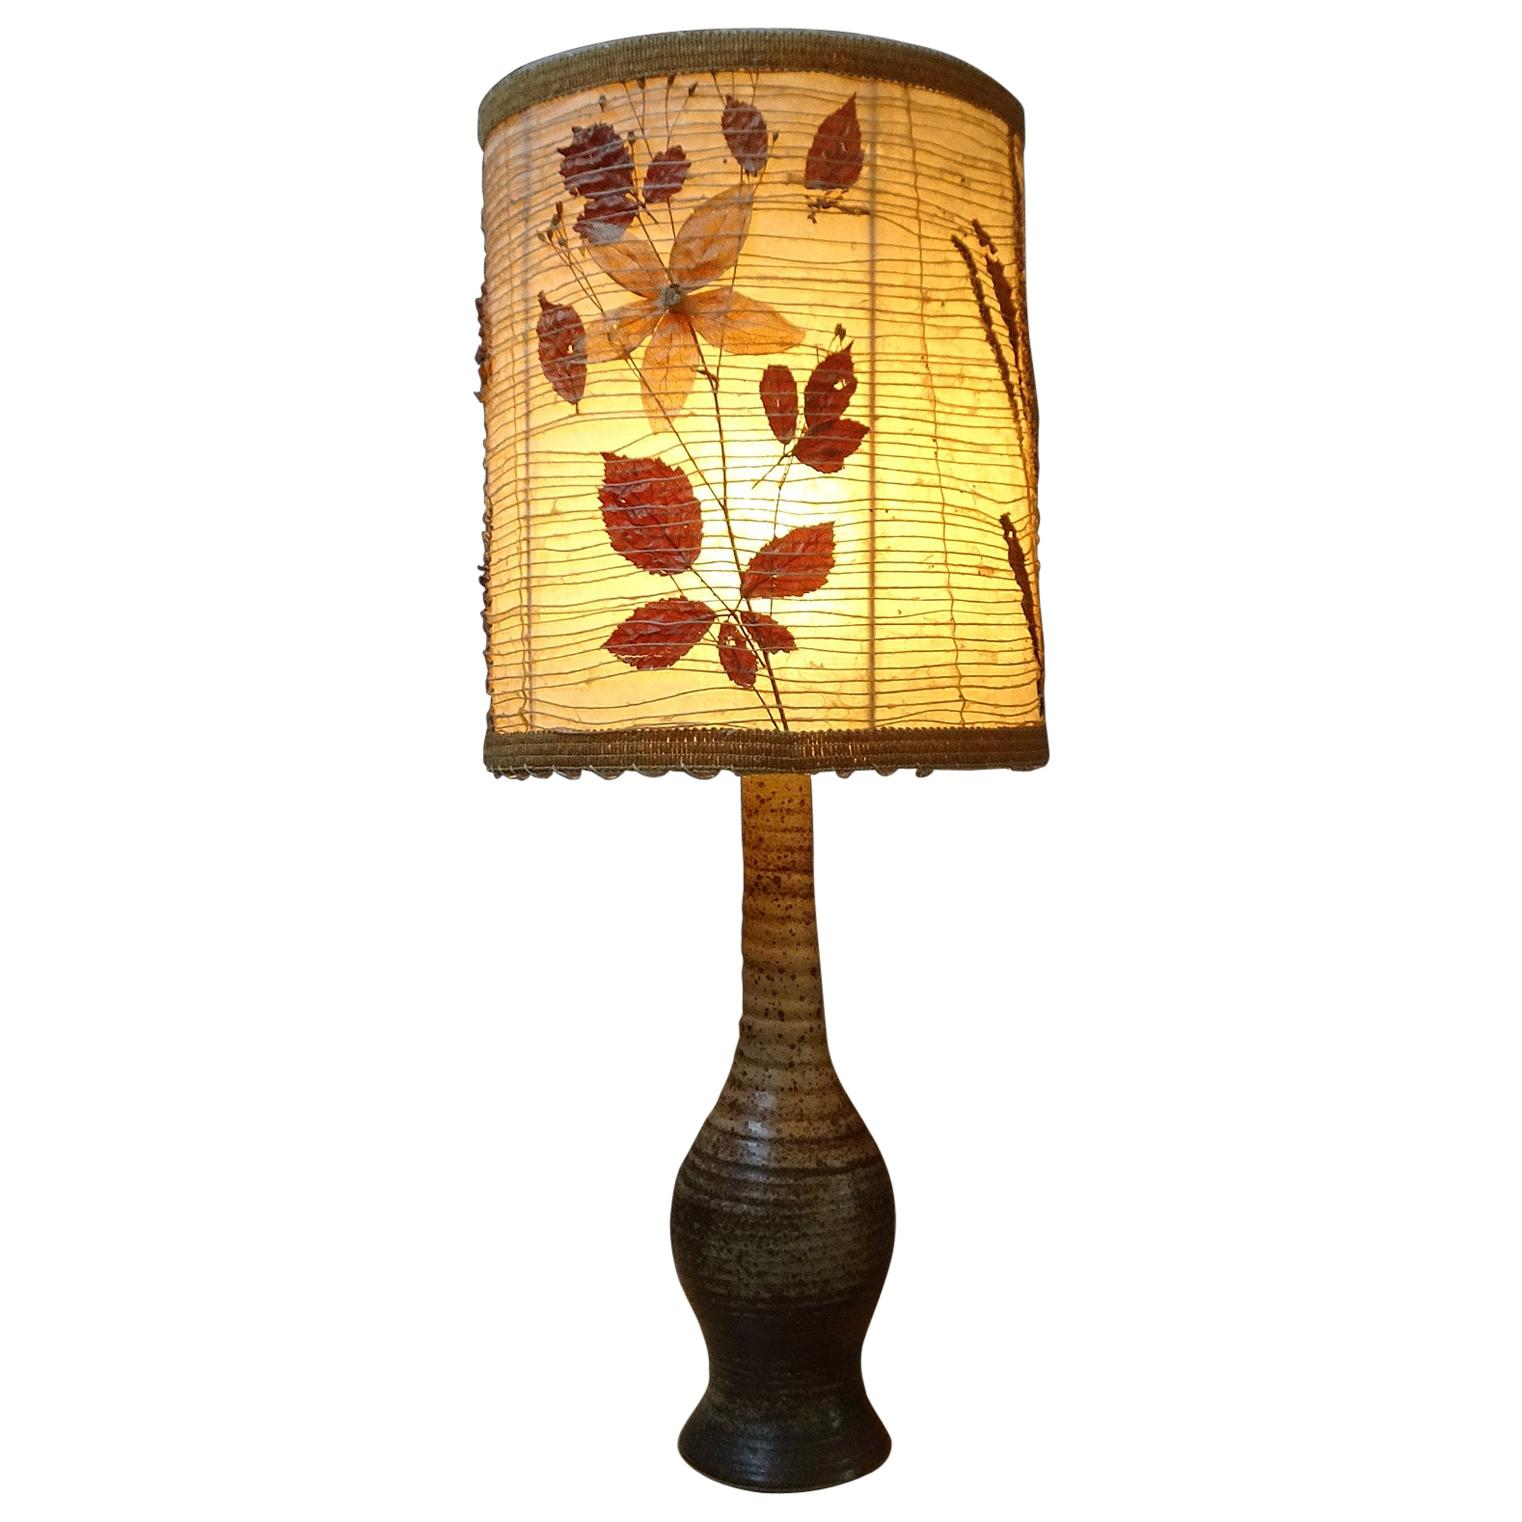 Midcentury Ceramic Table Lamp by Jean Tessier Vallauris, France, 1960s